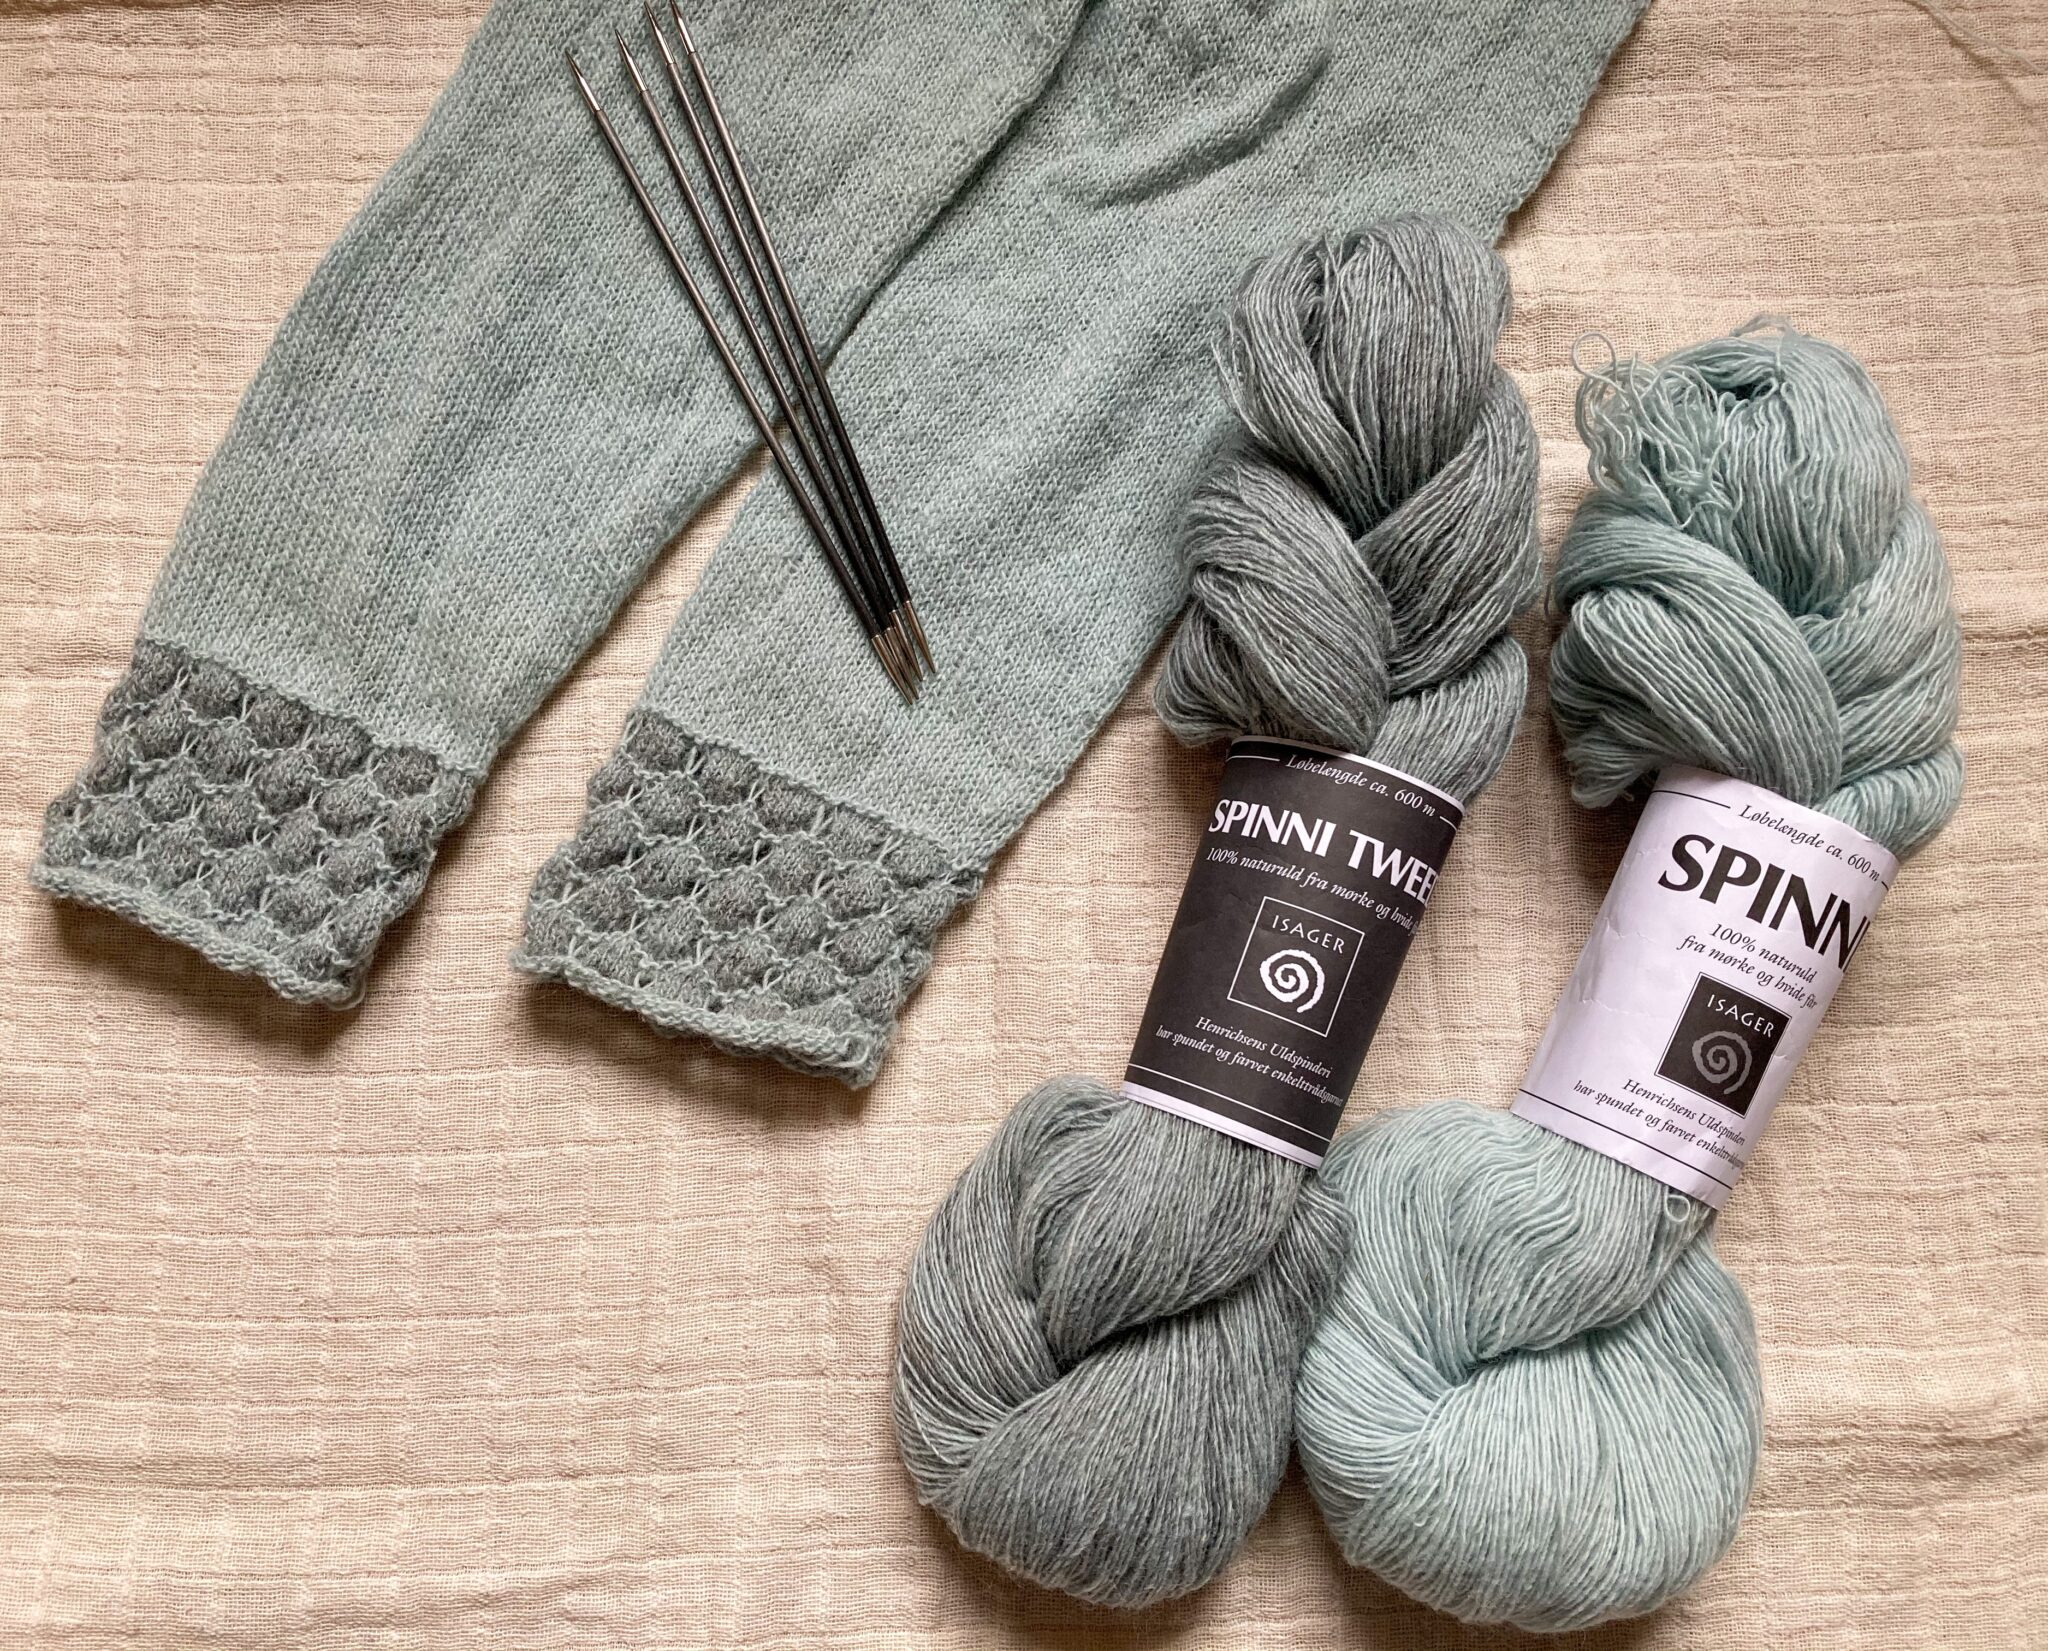 Stilhed UFO sleeves ready for frogging and Spinni yarn from Isager